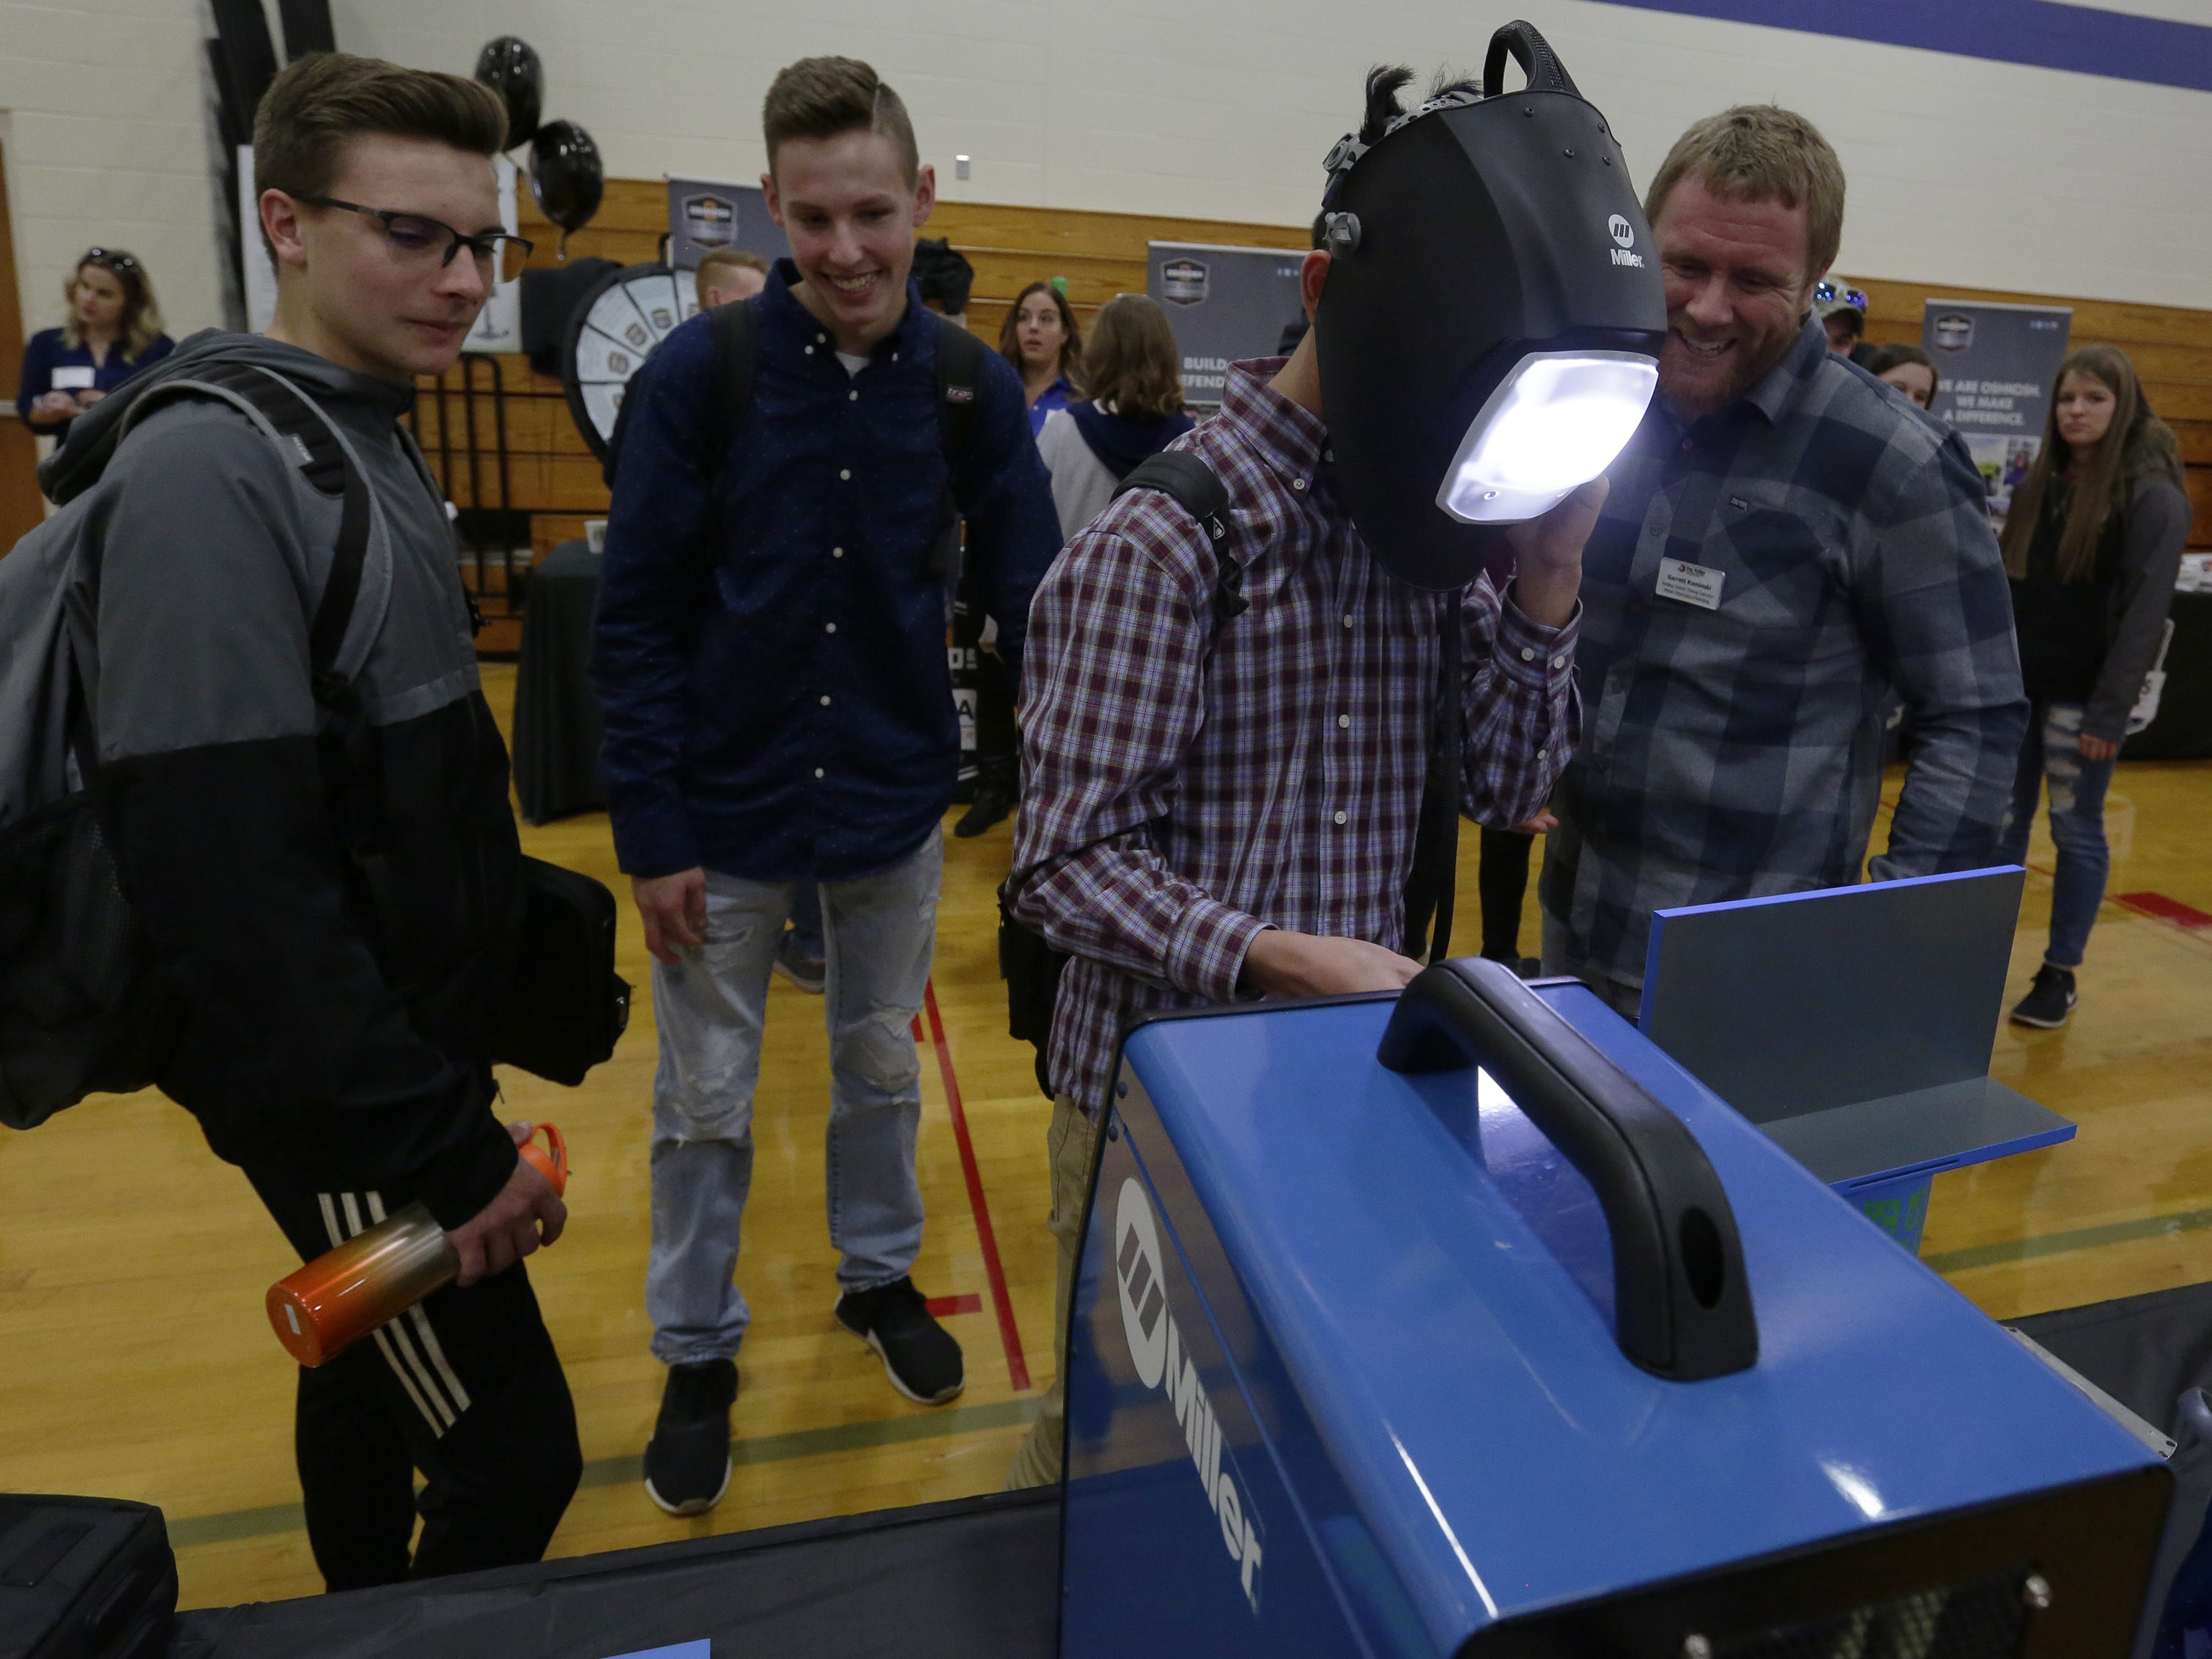 Garrett Kaminski of Fox Valley Technical College looks over the computerized welding that Max Jin is doing as his friends Nick Vey and John Rowe watch Tuesday, Oct. 23, 2018, during the Oshkosh Chamber of Commerce's Career Exploration Fair at Oshkosh West High School. About 1,000 students from Oshkosh and Omro middle and high schools participated in this year's expanded fair, thanks to a $5,000 grant from AT&T.